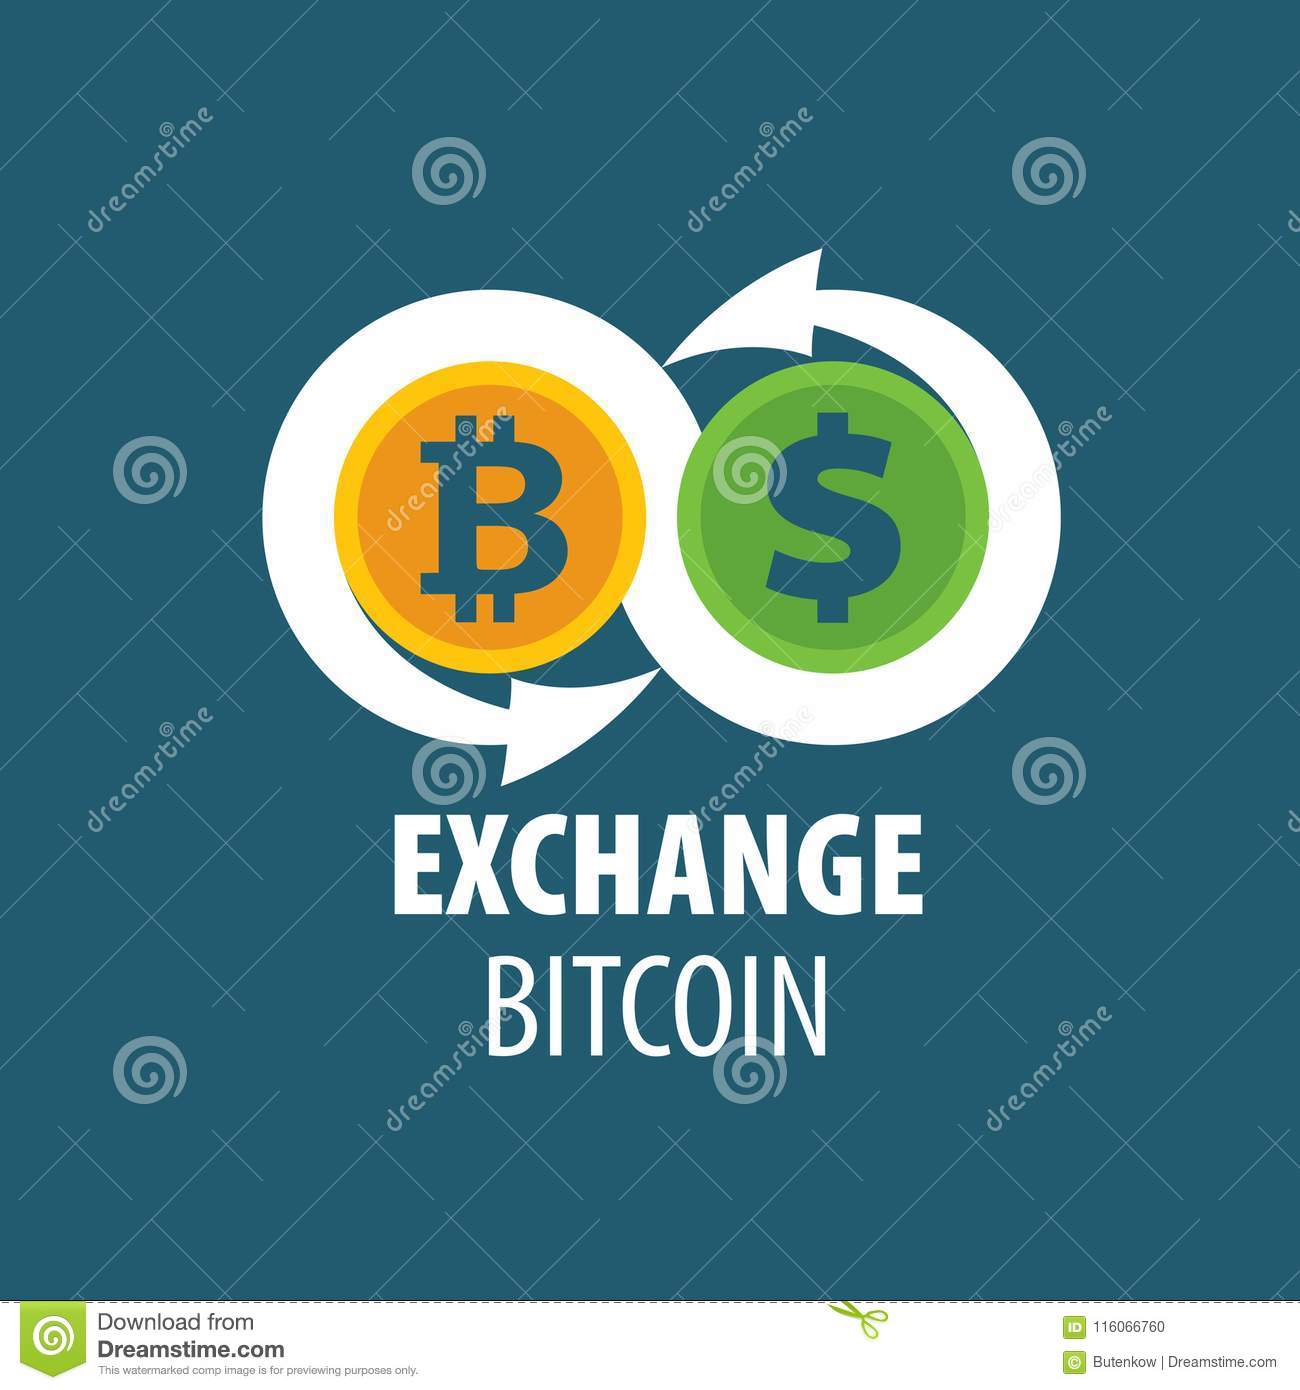 How exchange bitcoin for cash